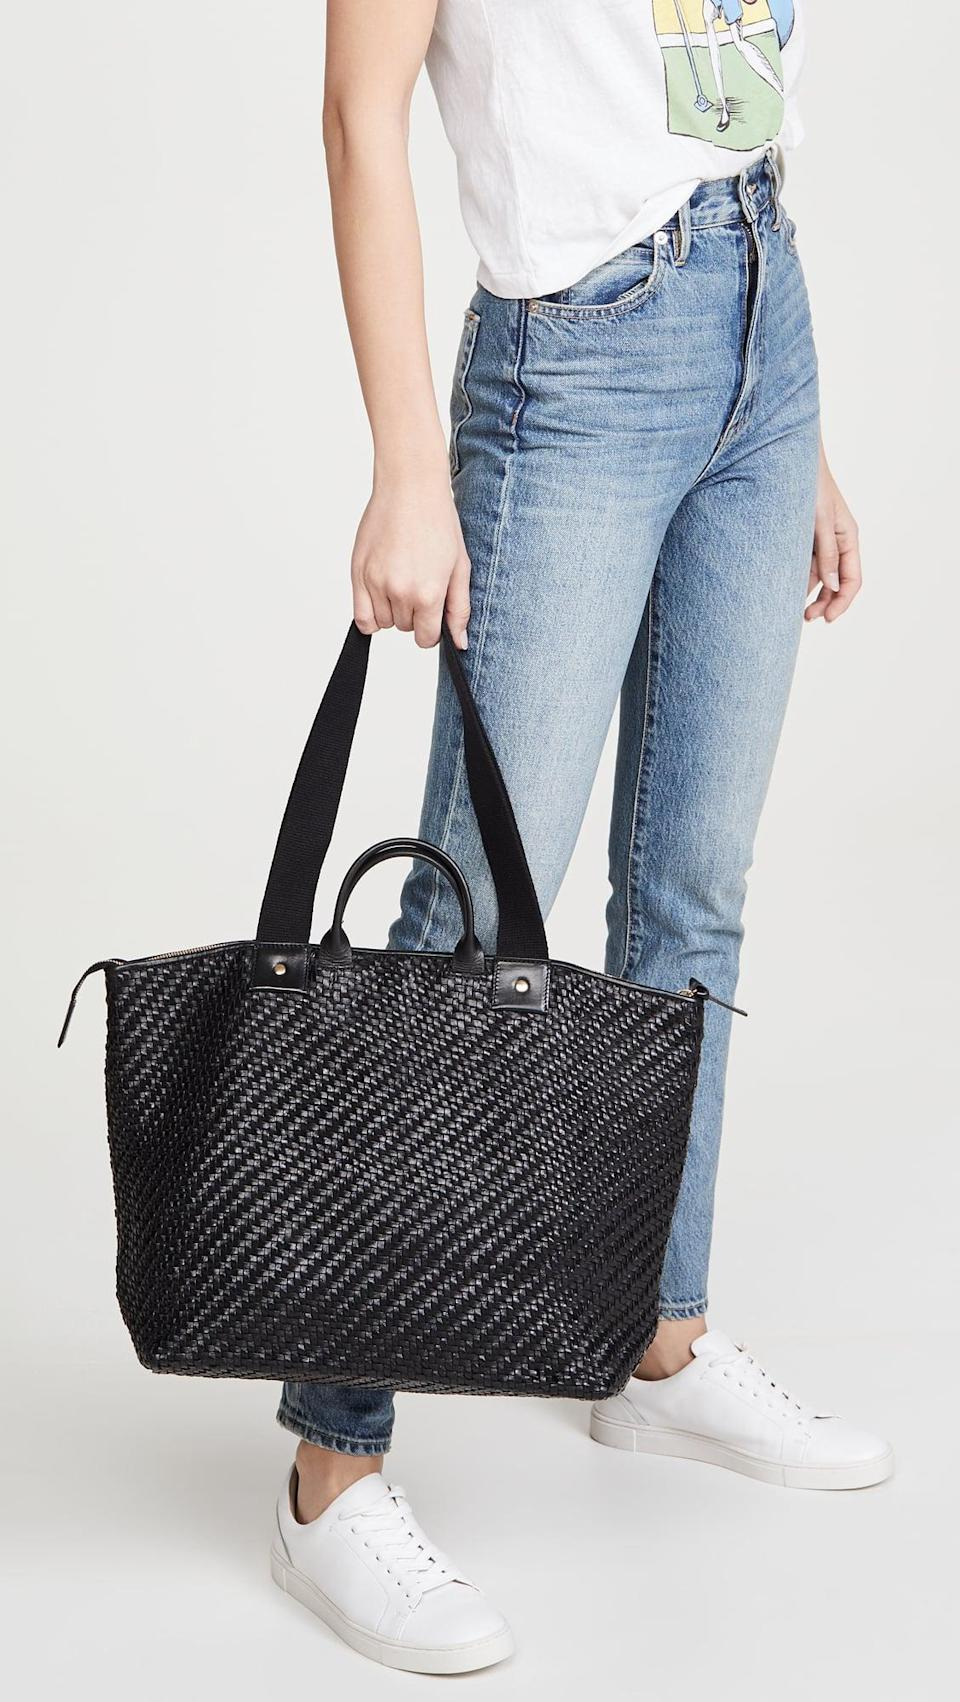 """<p>We love that this <a href=""""https://www.popsugar.com/buy/Clare-V-Le-Zip-Sac-Bag-537113?p_name=Clare%20V.%20Le%20Zip%20Sac%20Bag&retailer=shopbop.com&pid=537113&price=535&evar1=fab%3Aus&evar9=45623846&evar98=https%3A%2F%2Fwww.popsugar.com%2Ffashion%2Fphoto-gallery%2F45623846%2Fimage%2F47066452%2FClare-V-Le-Zip-Sac-Bag&list1=shopping%2Caccessories%2Cbags%2Cworkwear&prop13=mobile&pdata=1"""" class=""""link rapid-noclick-resp"""" rel=""""nofollow noopener"""" target=""""_blank"""" data-ylk=""""slk:Clare V. Le Zip Sac Bag"""">Clare V. Le Zip Sac Bag </a> ($535) has two different strap options.</p>"""